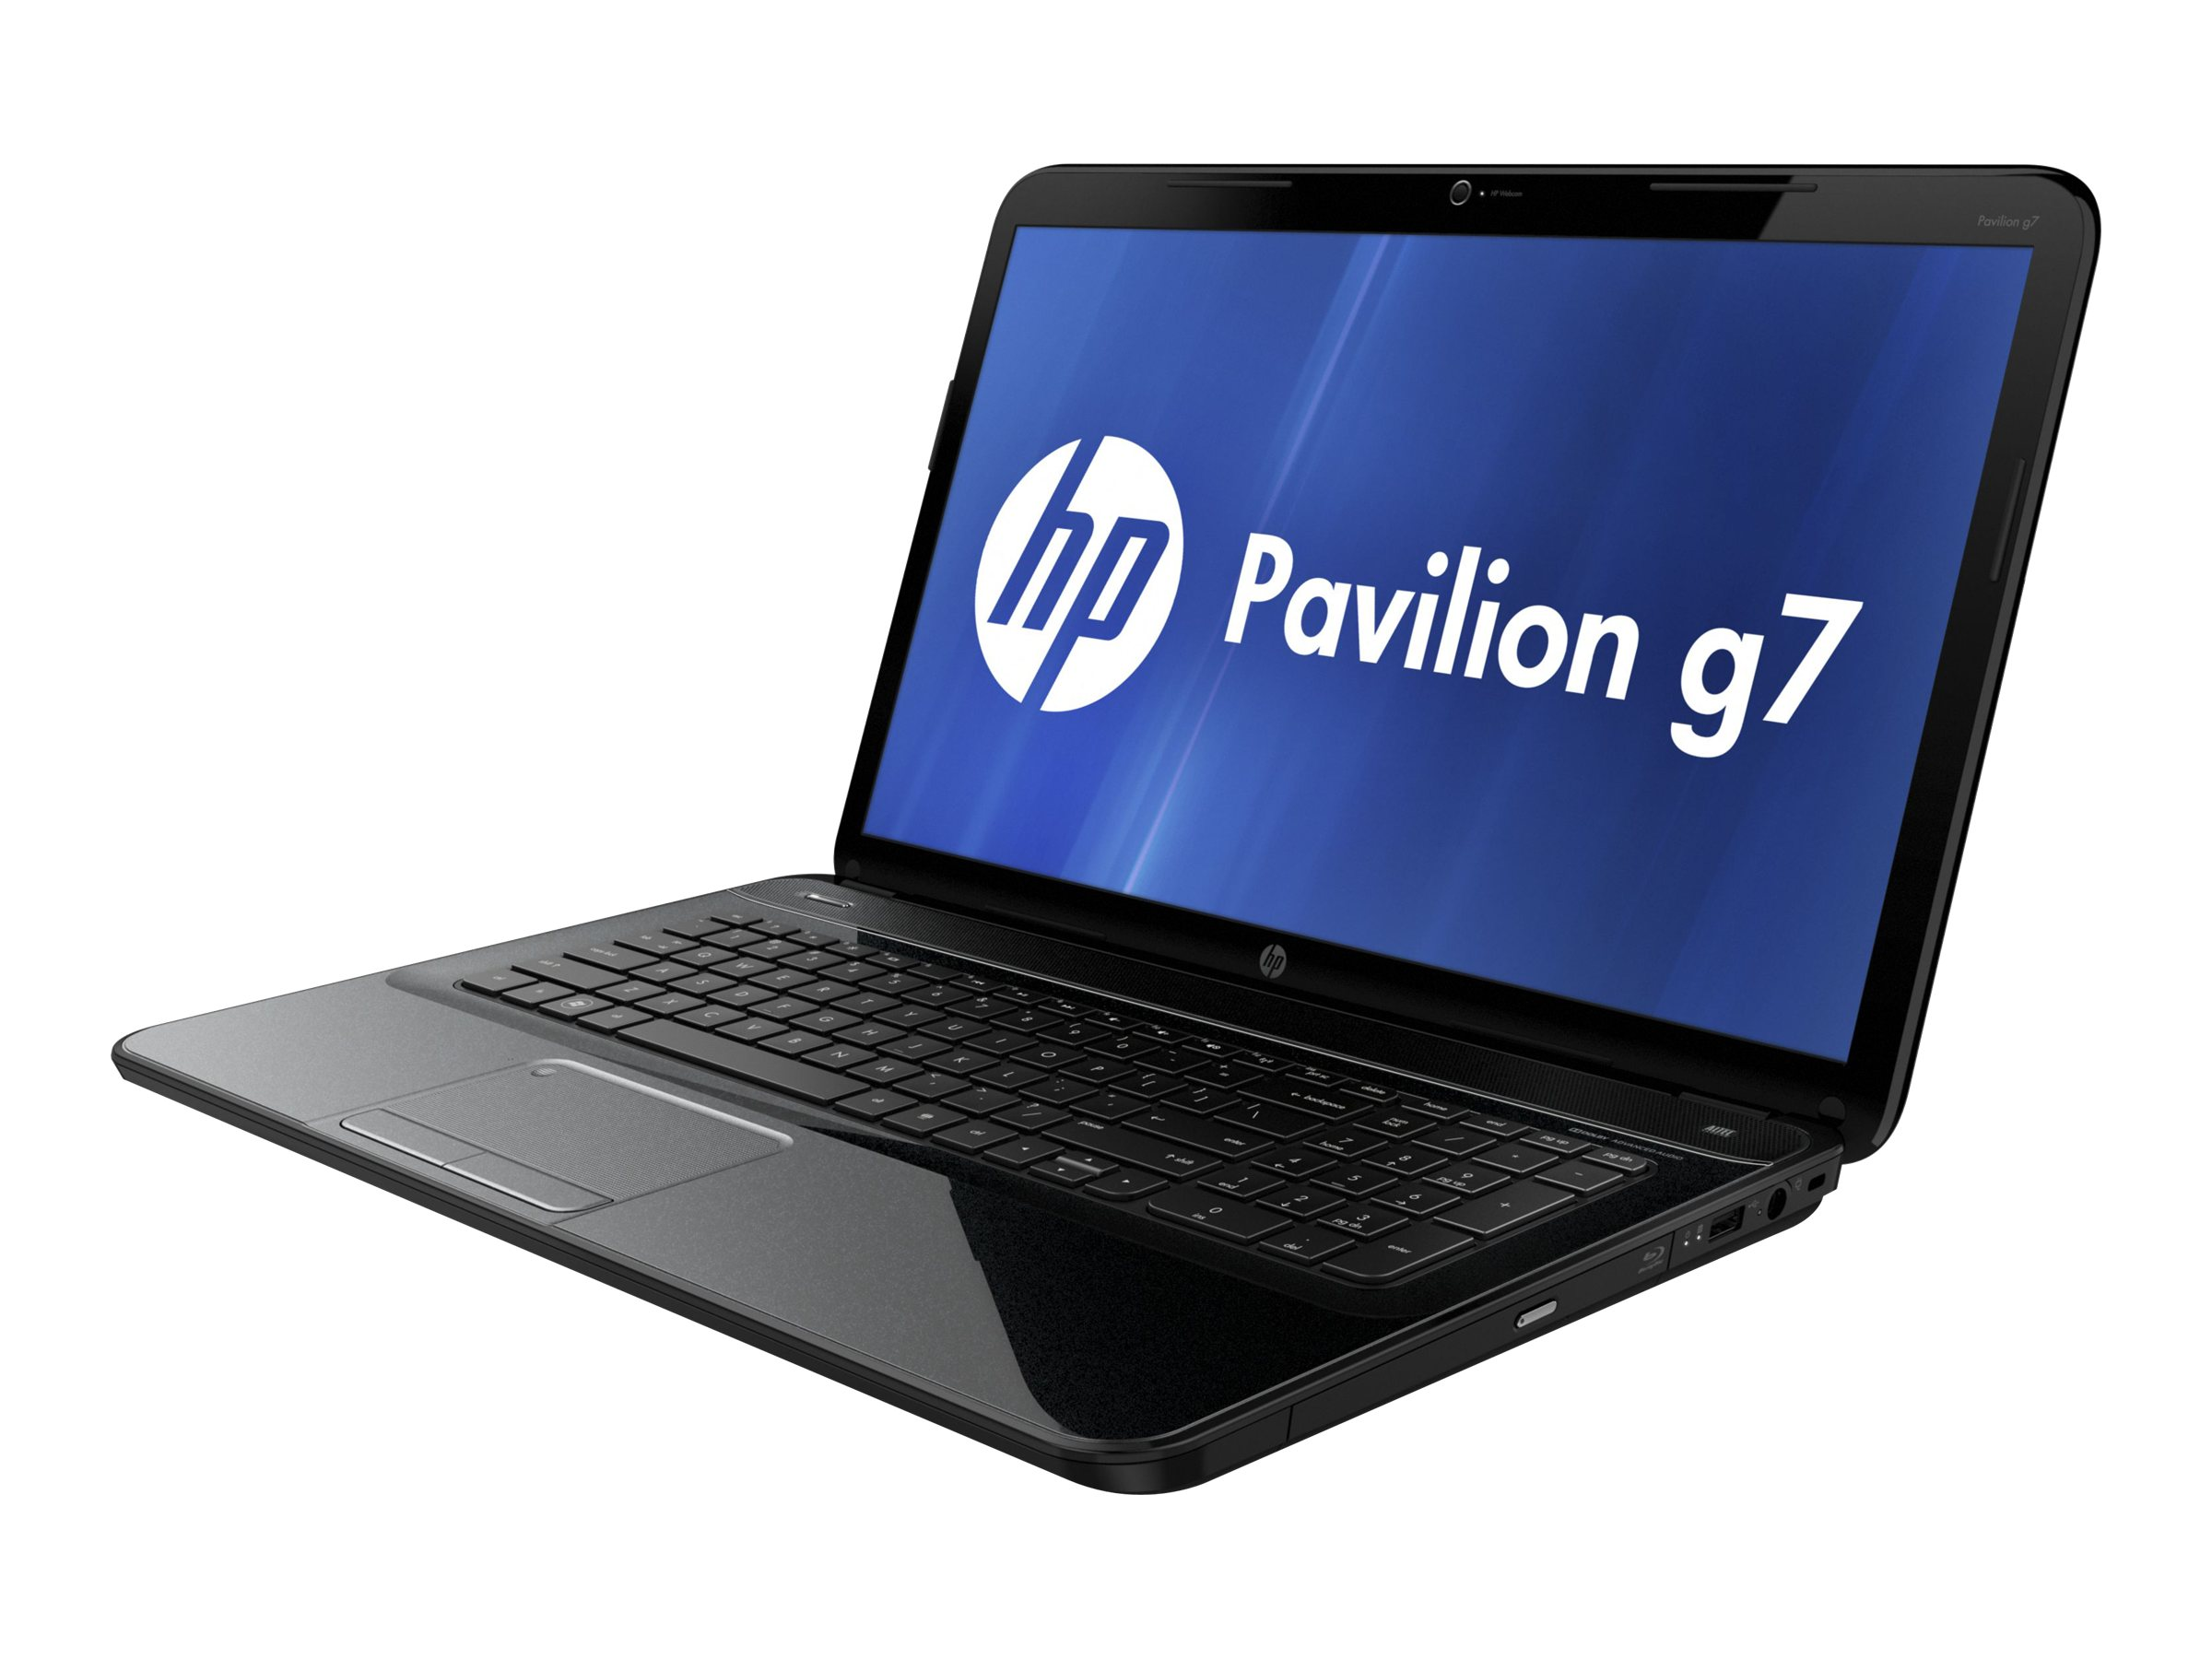 HP Pavilion G7-2222us : 2.4GHz Core i3 17.3in display